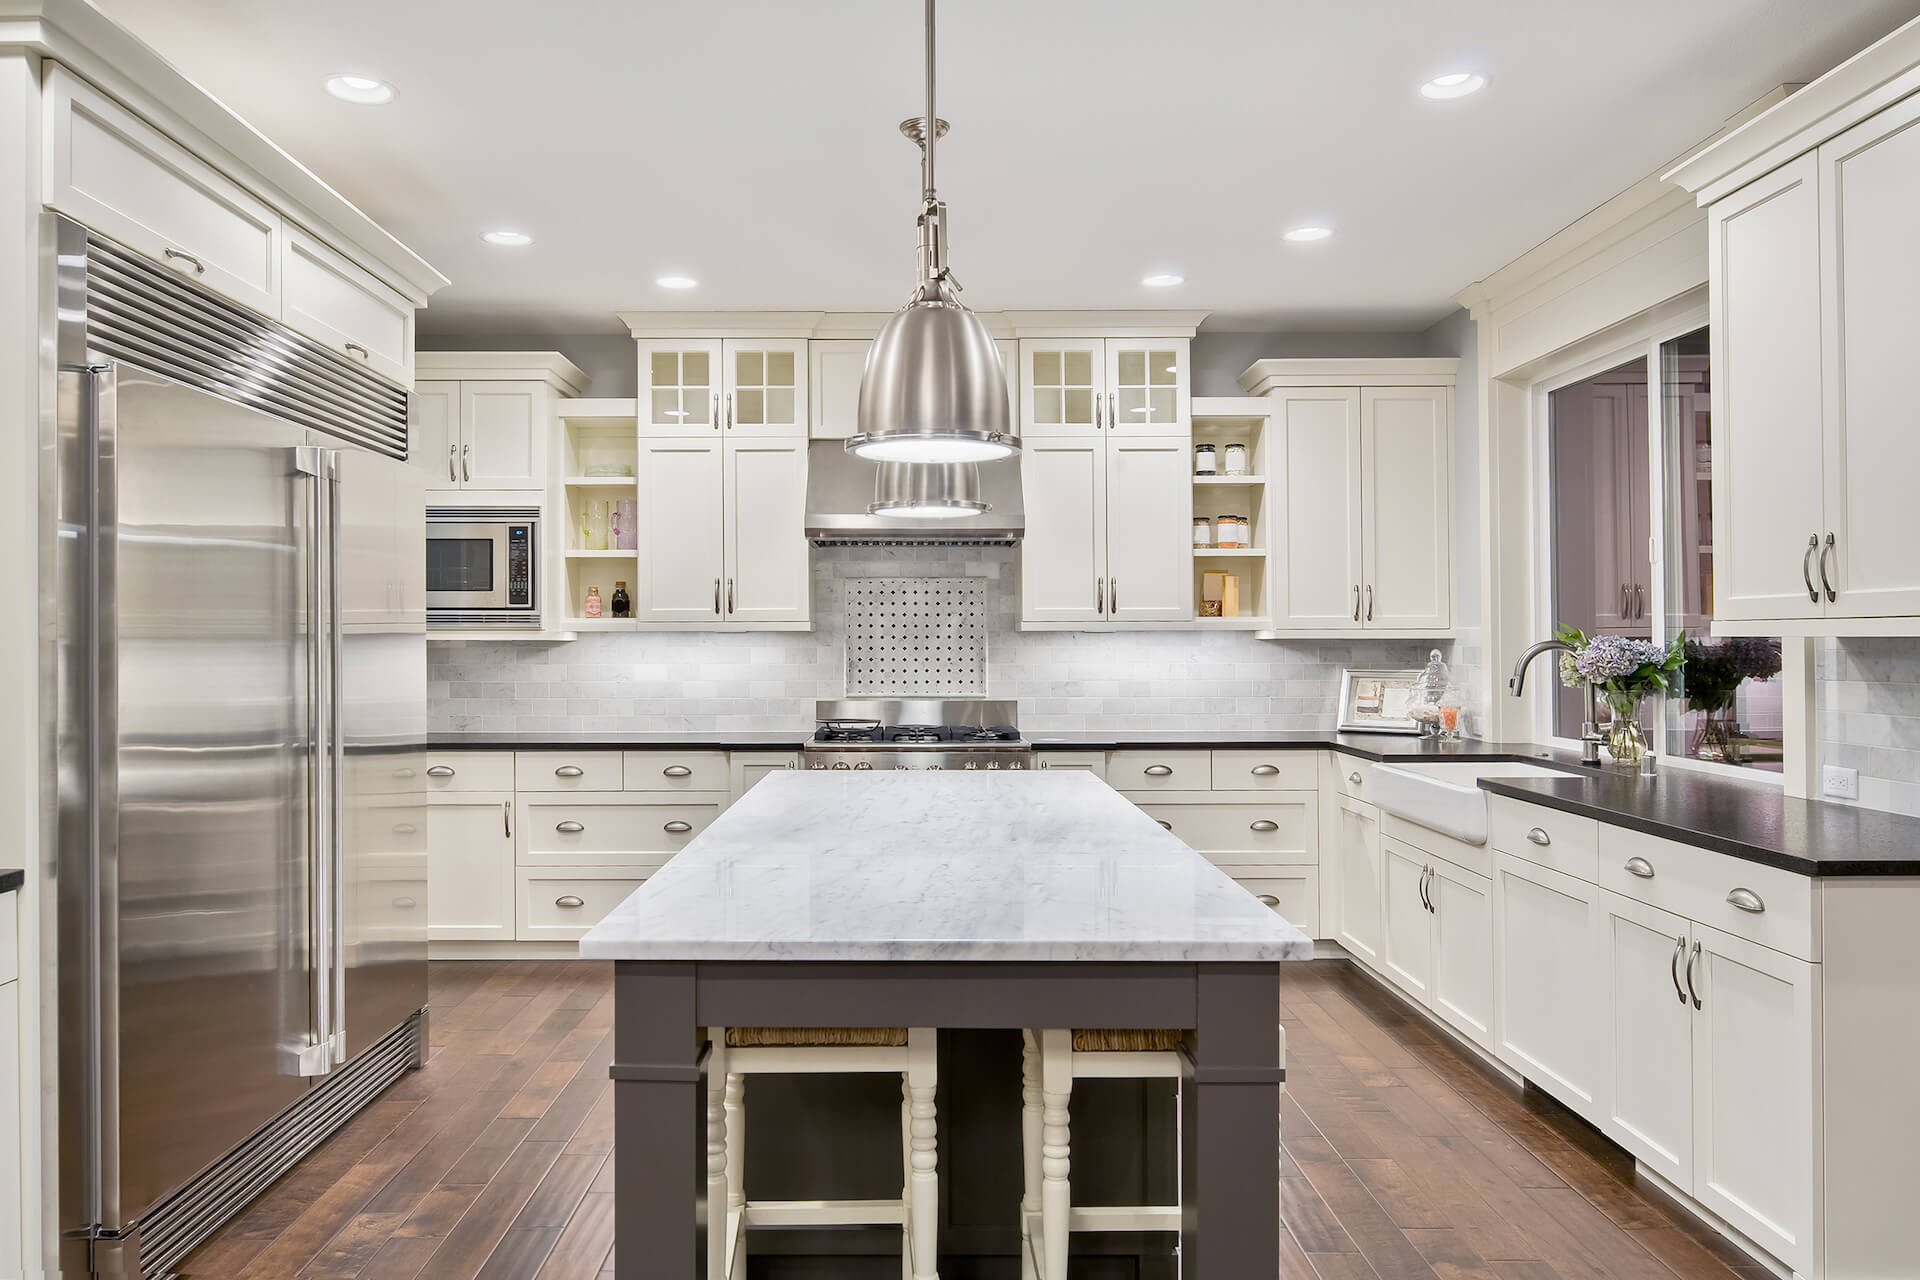 newly refinished white kitchen cabinet after a cabinet refinishing in draper